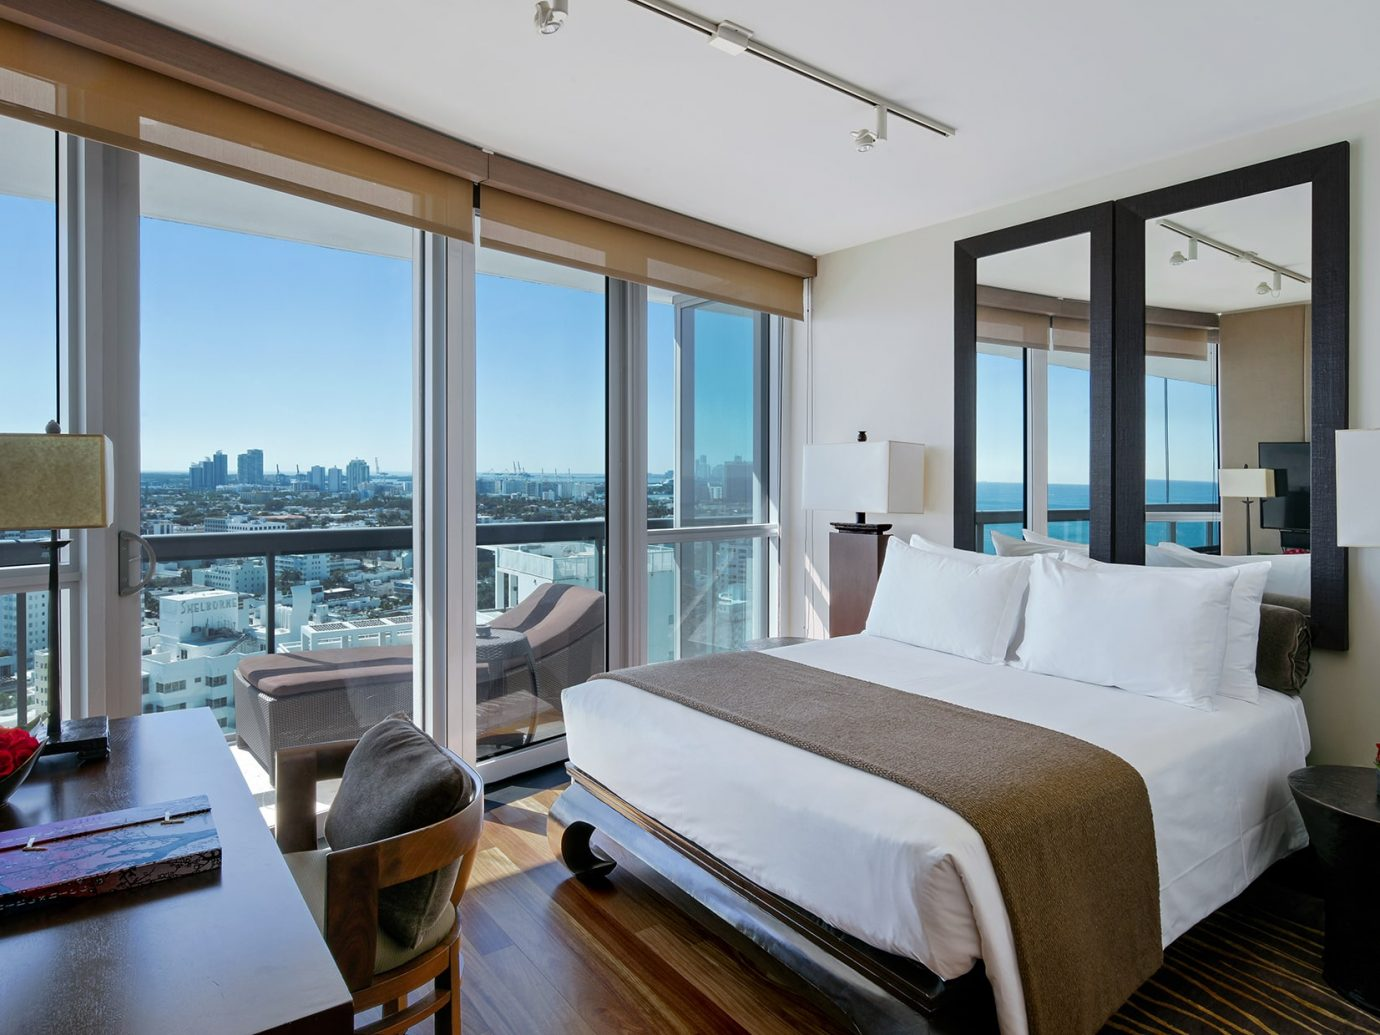 Bedroom at the Setai Miami Beach